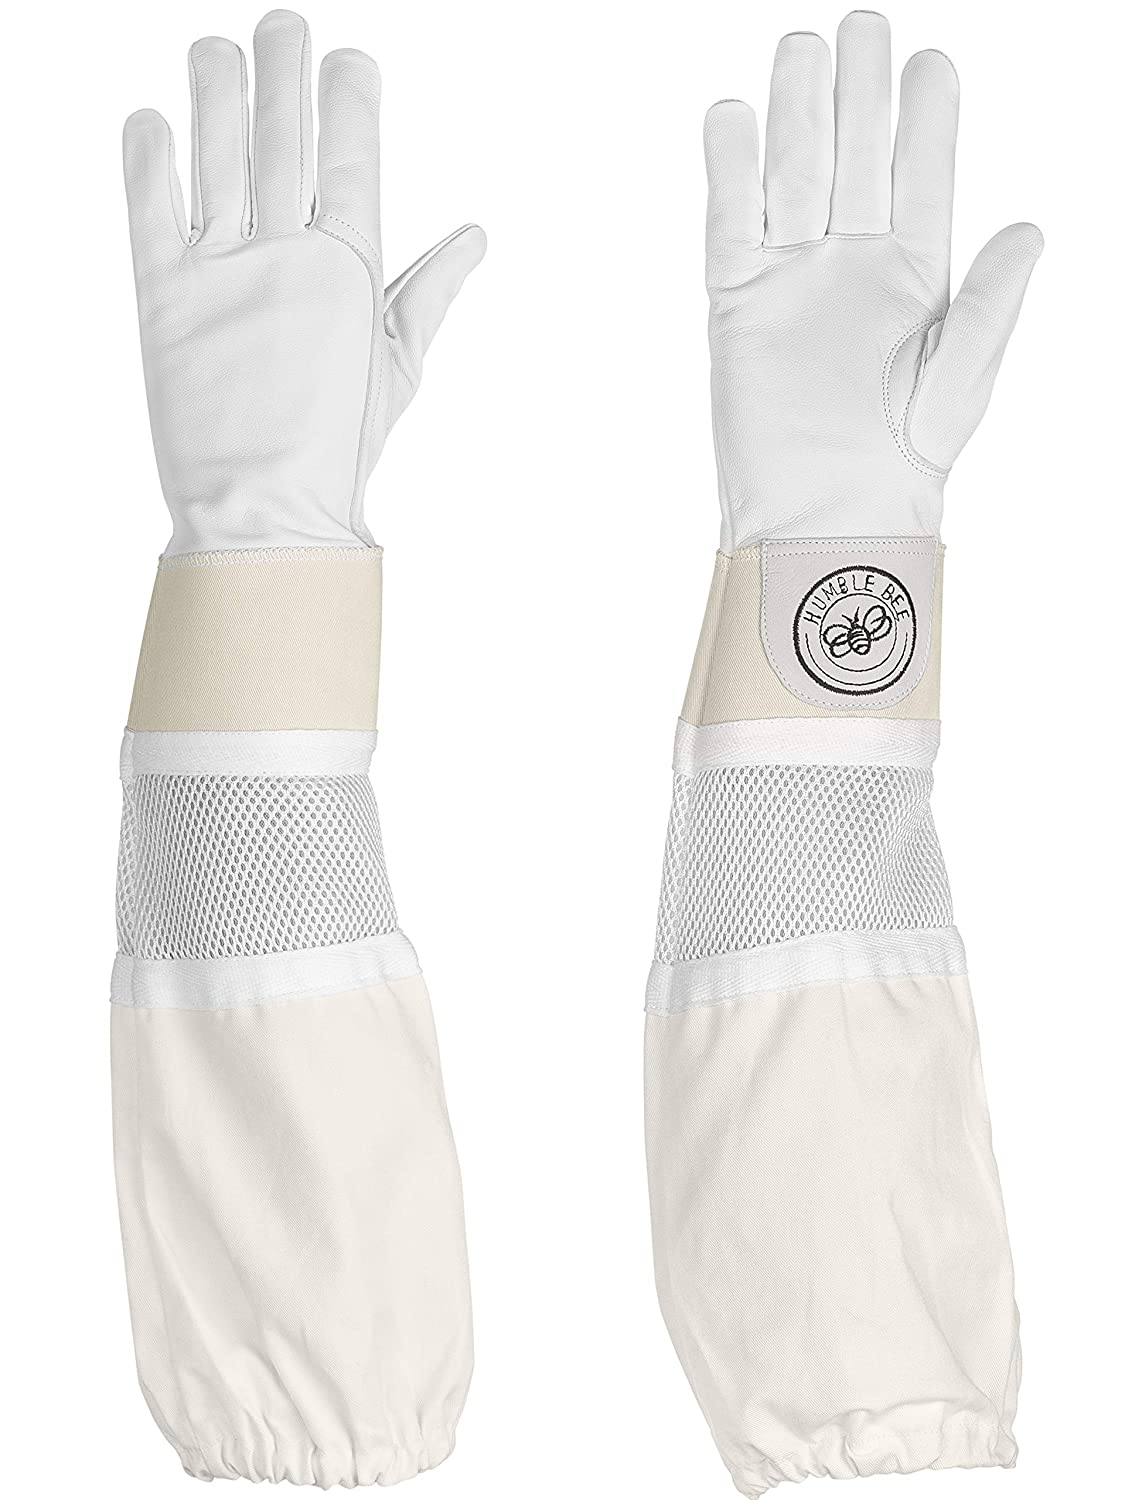 Humble Bee 114-S Beekeeping Gloves with Reinforced and Ventilated Cuffs (Small)